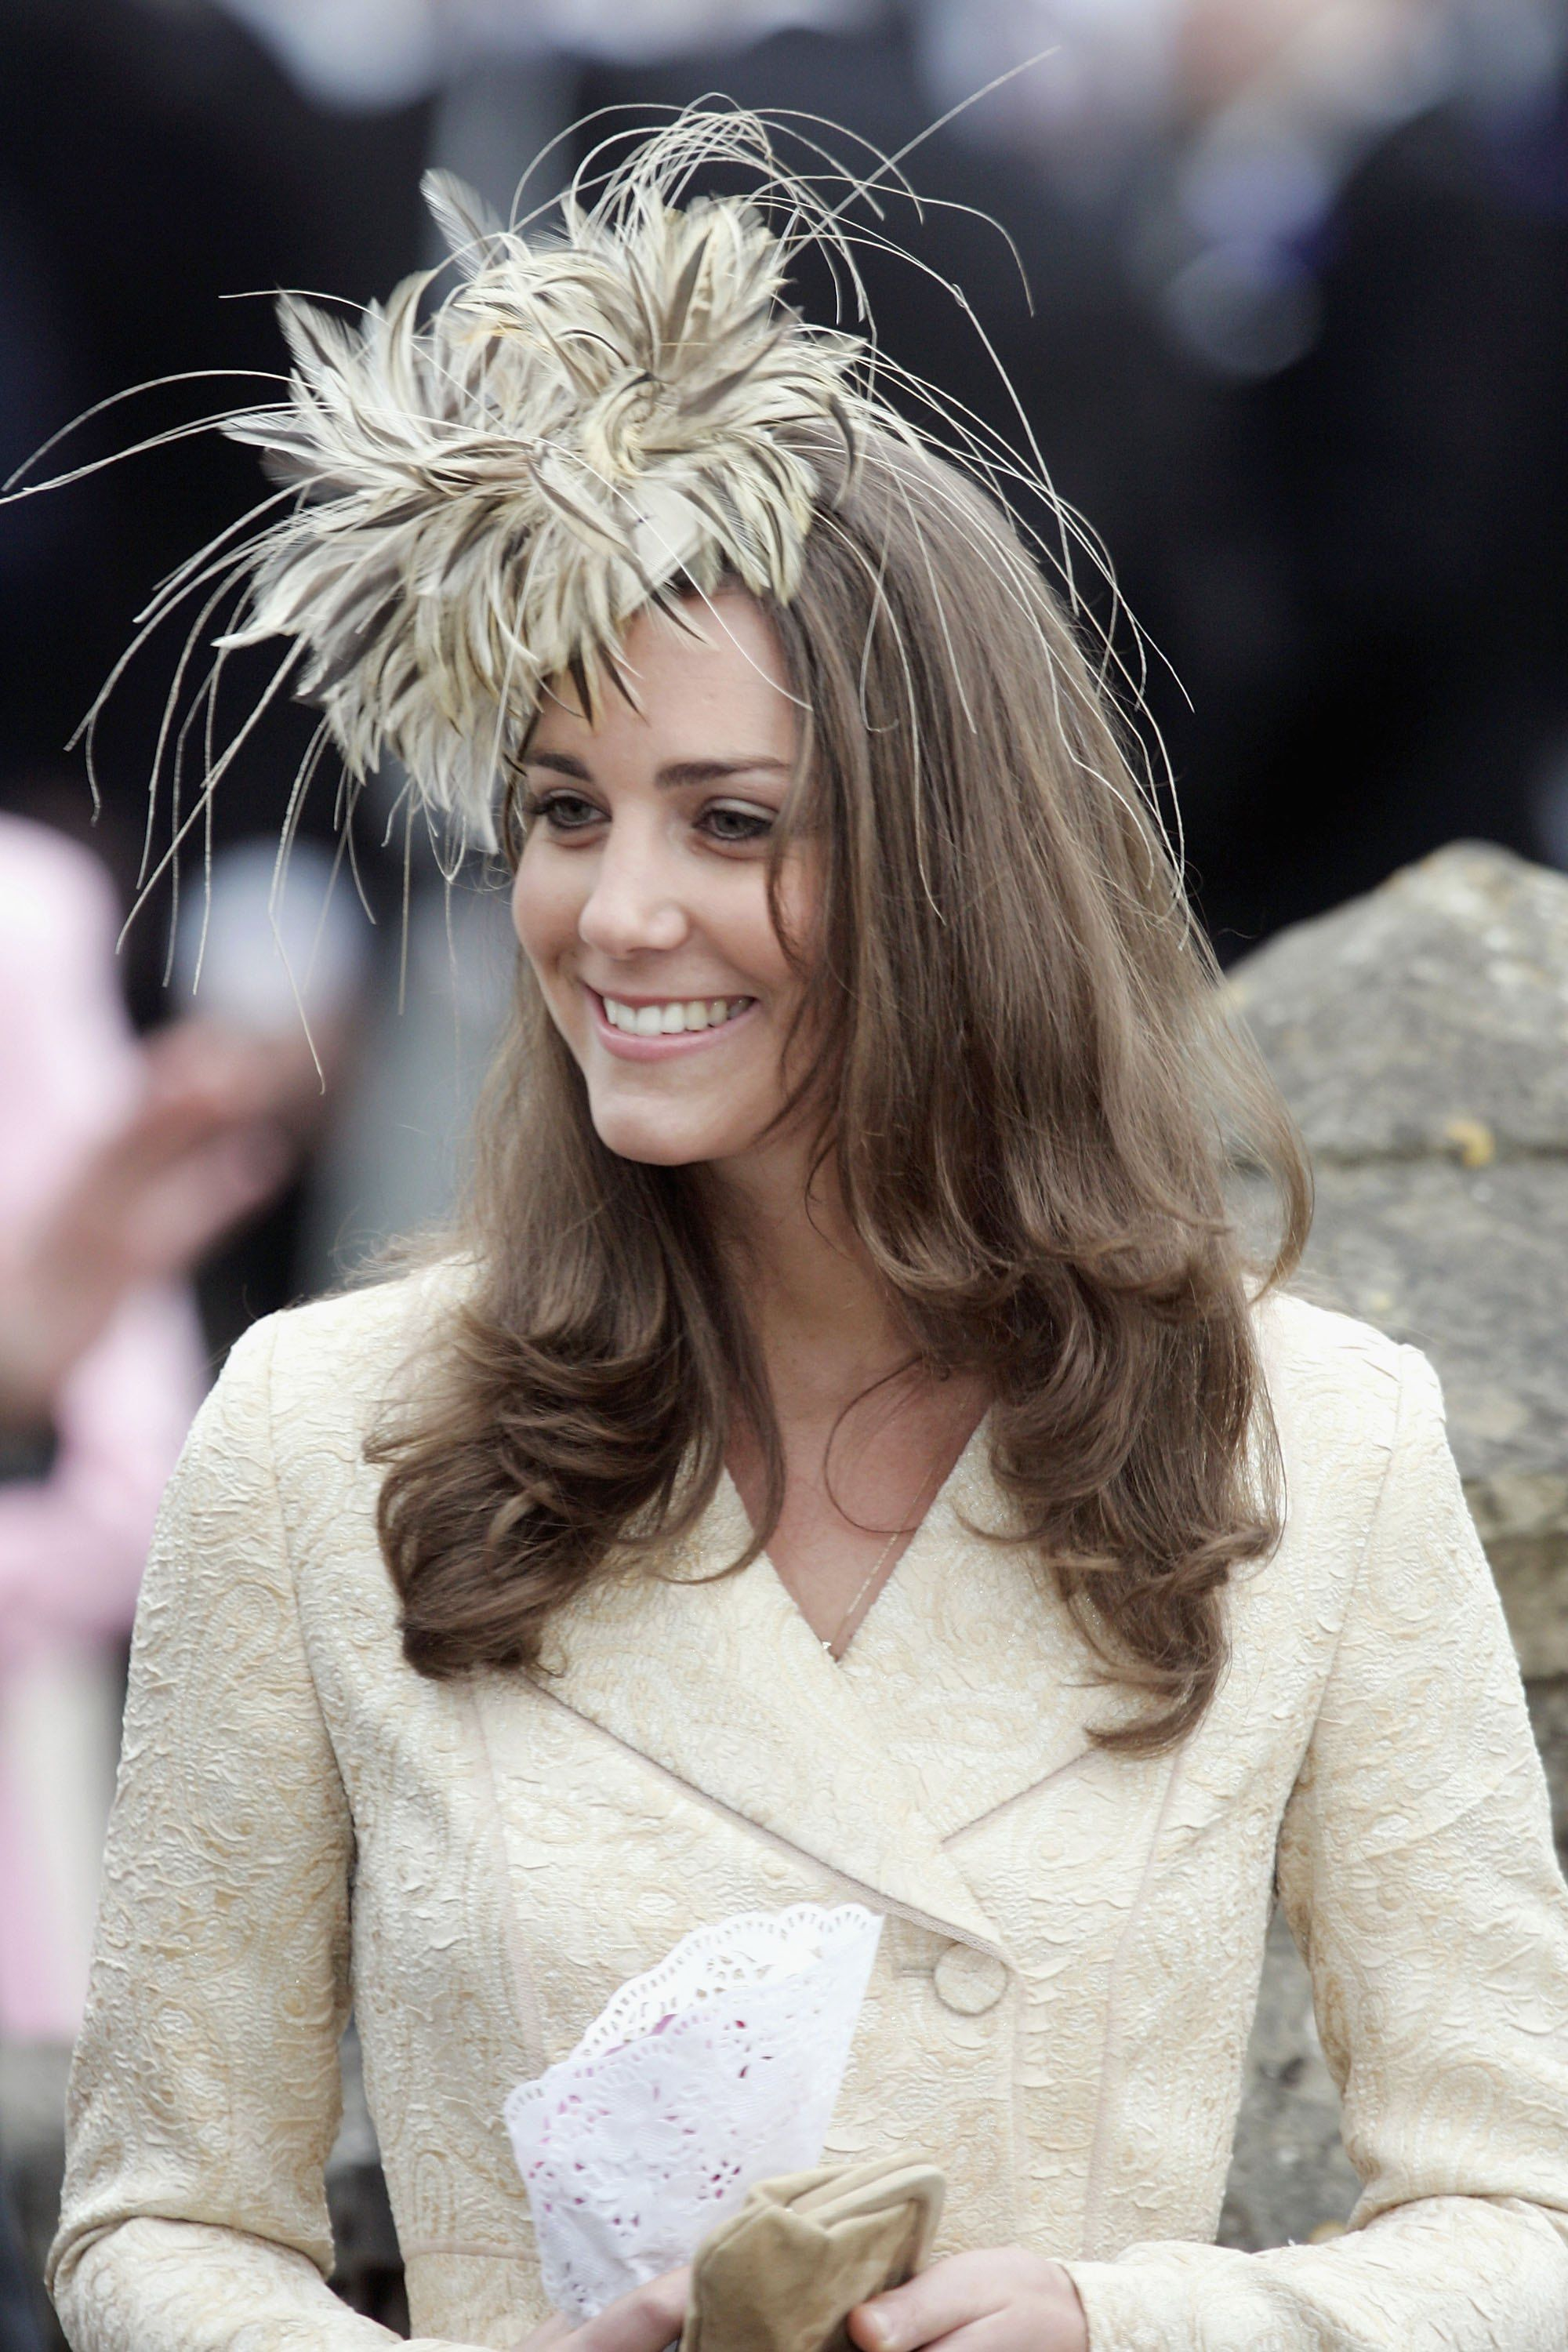 The Duchess of Cambridge at the wedding of Laura Parker-Bowles and Harry Lopes in 2006   Source: Getty Images